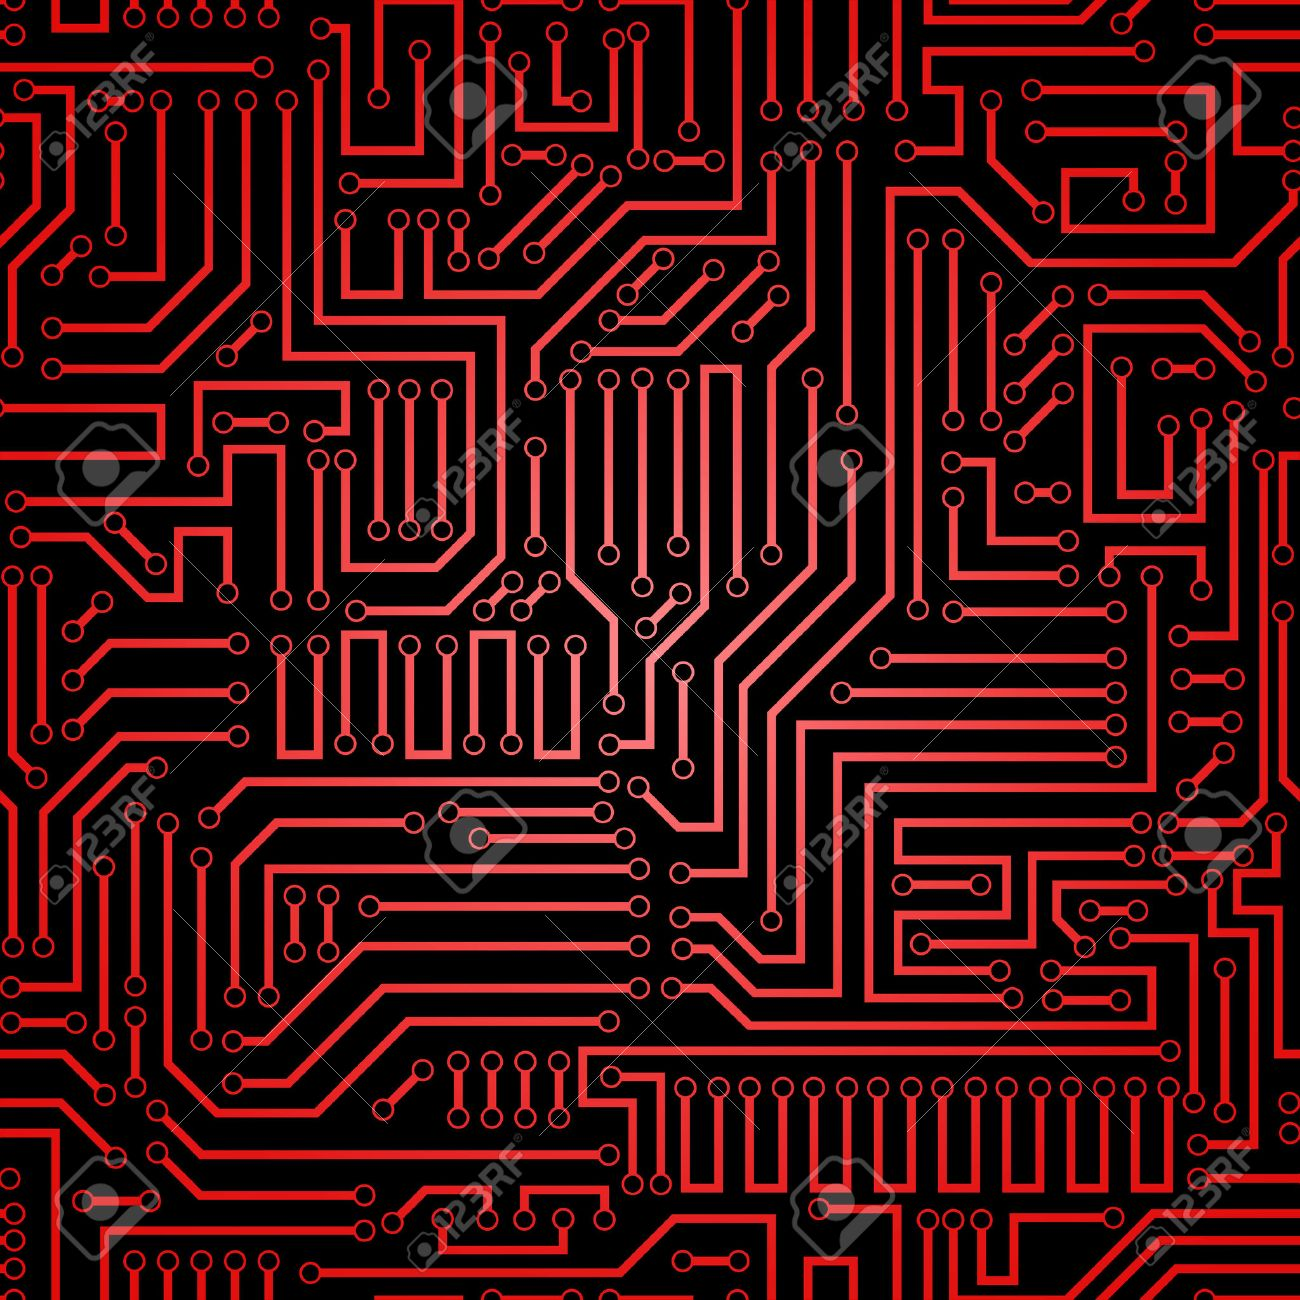 printed circuit texture background seamless red and black